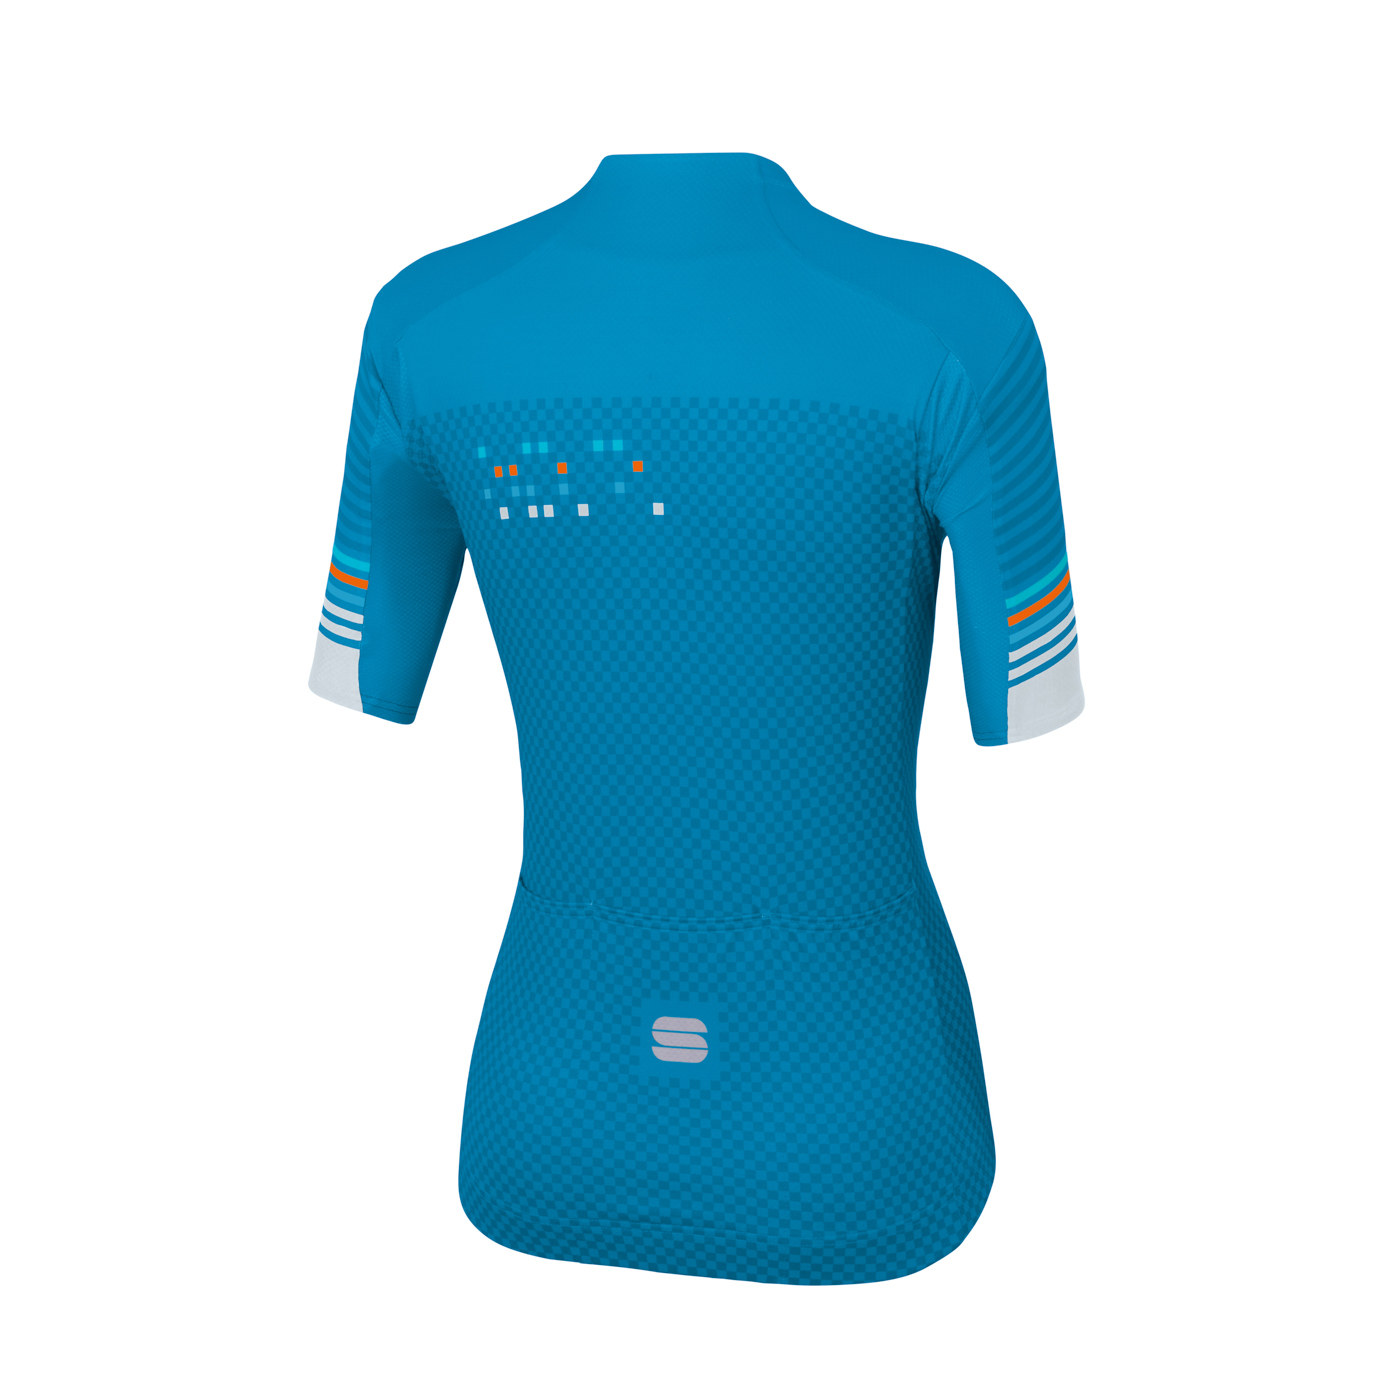 | Sportful Fietsshirt Korte mouwen voor Dames Blauw Wit - SF Sticker W Jersey-Blue A Methyl Blue Wh